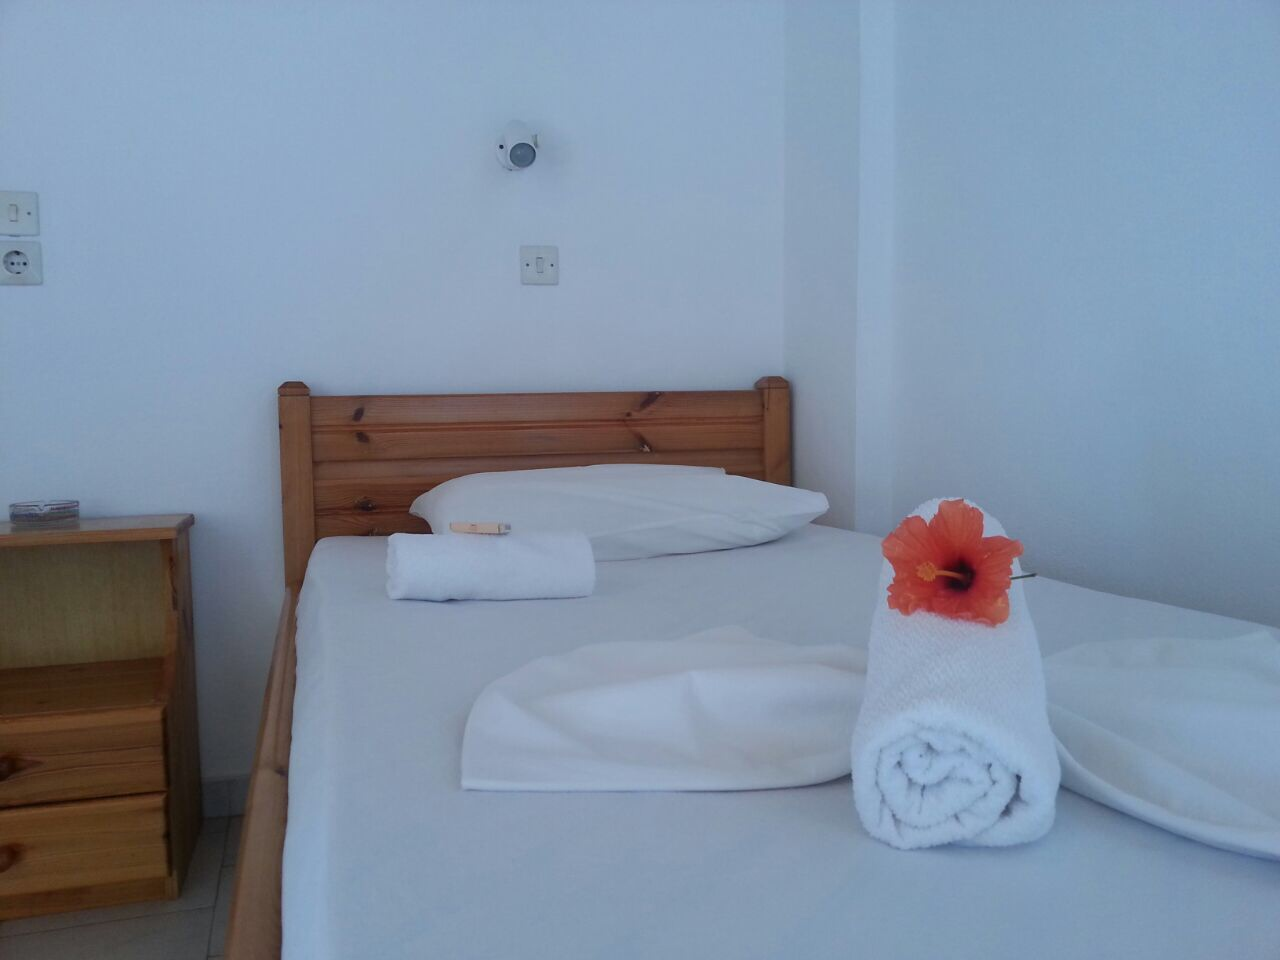 beds prepared to welcome new guests